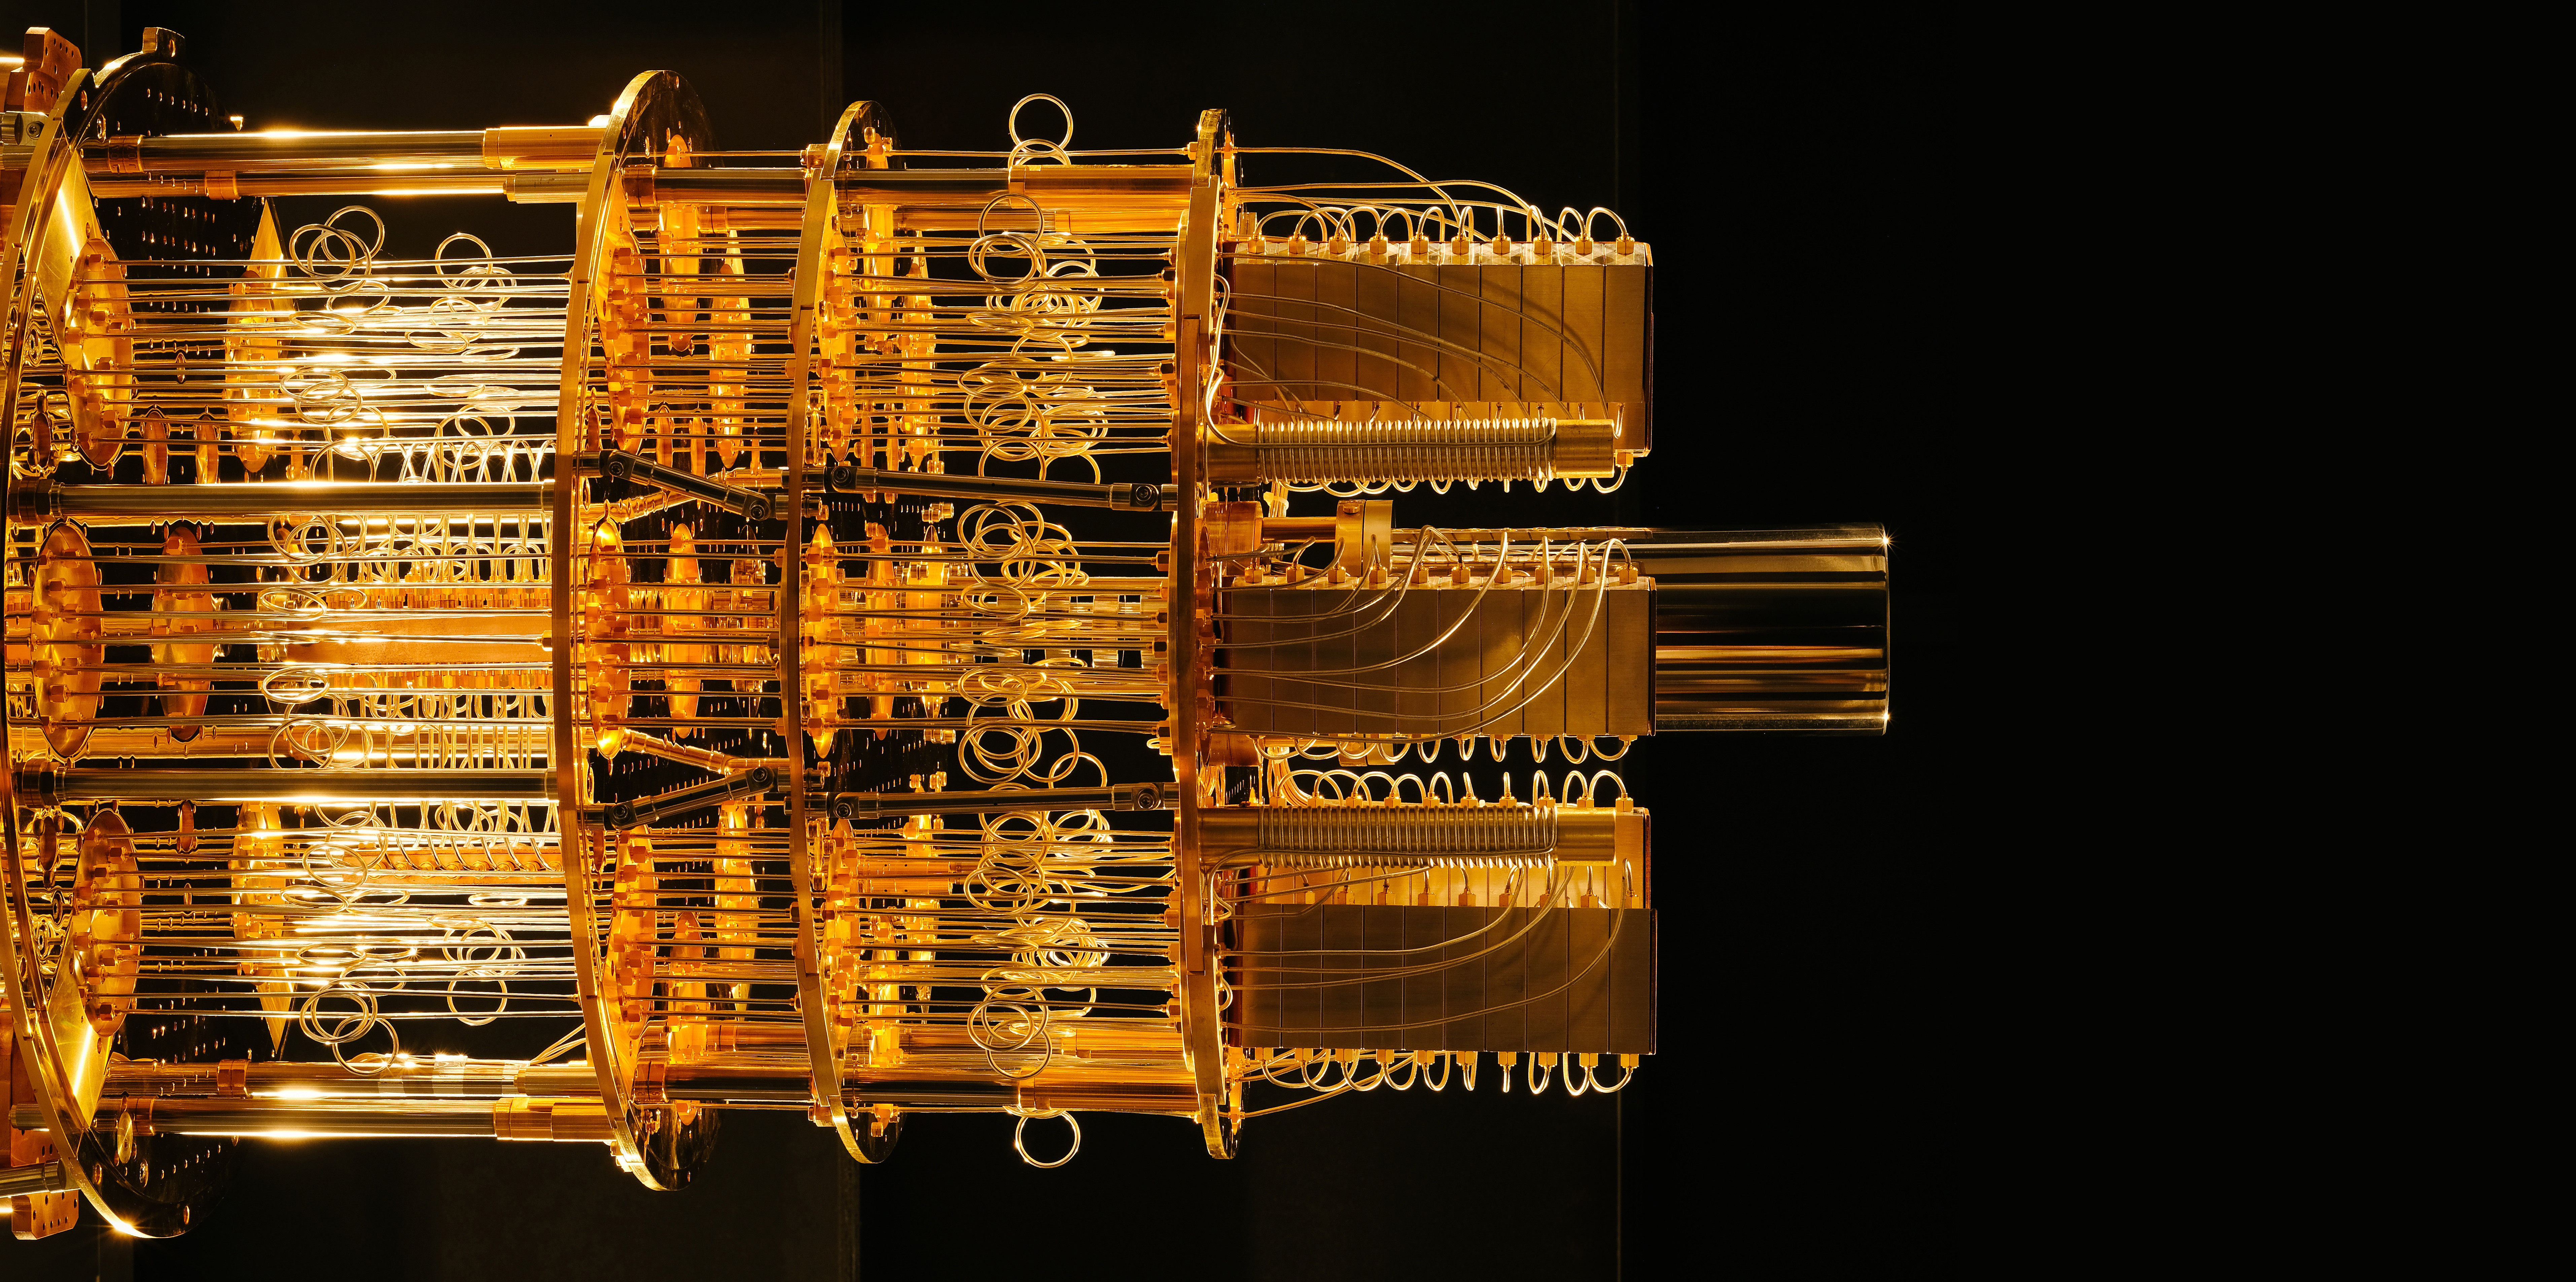 quantum computer cryptography security